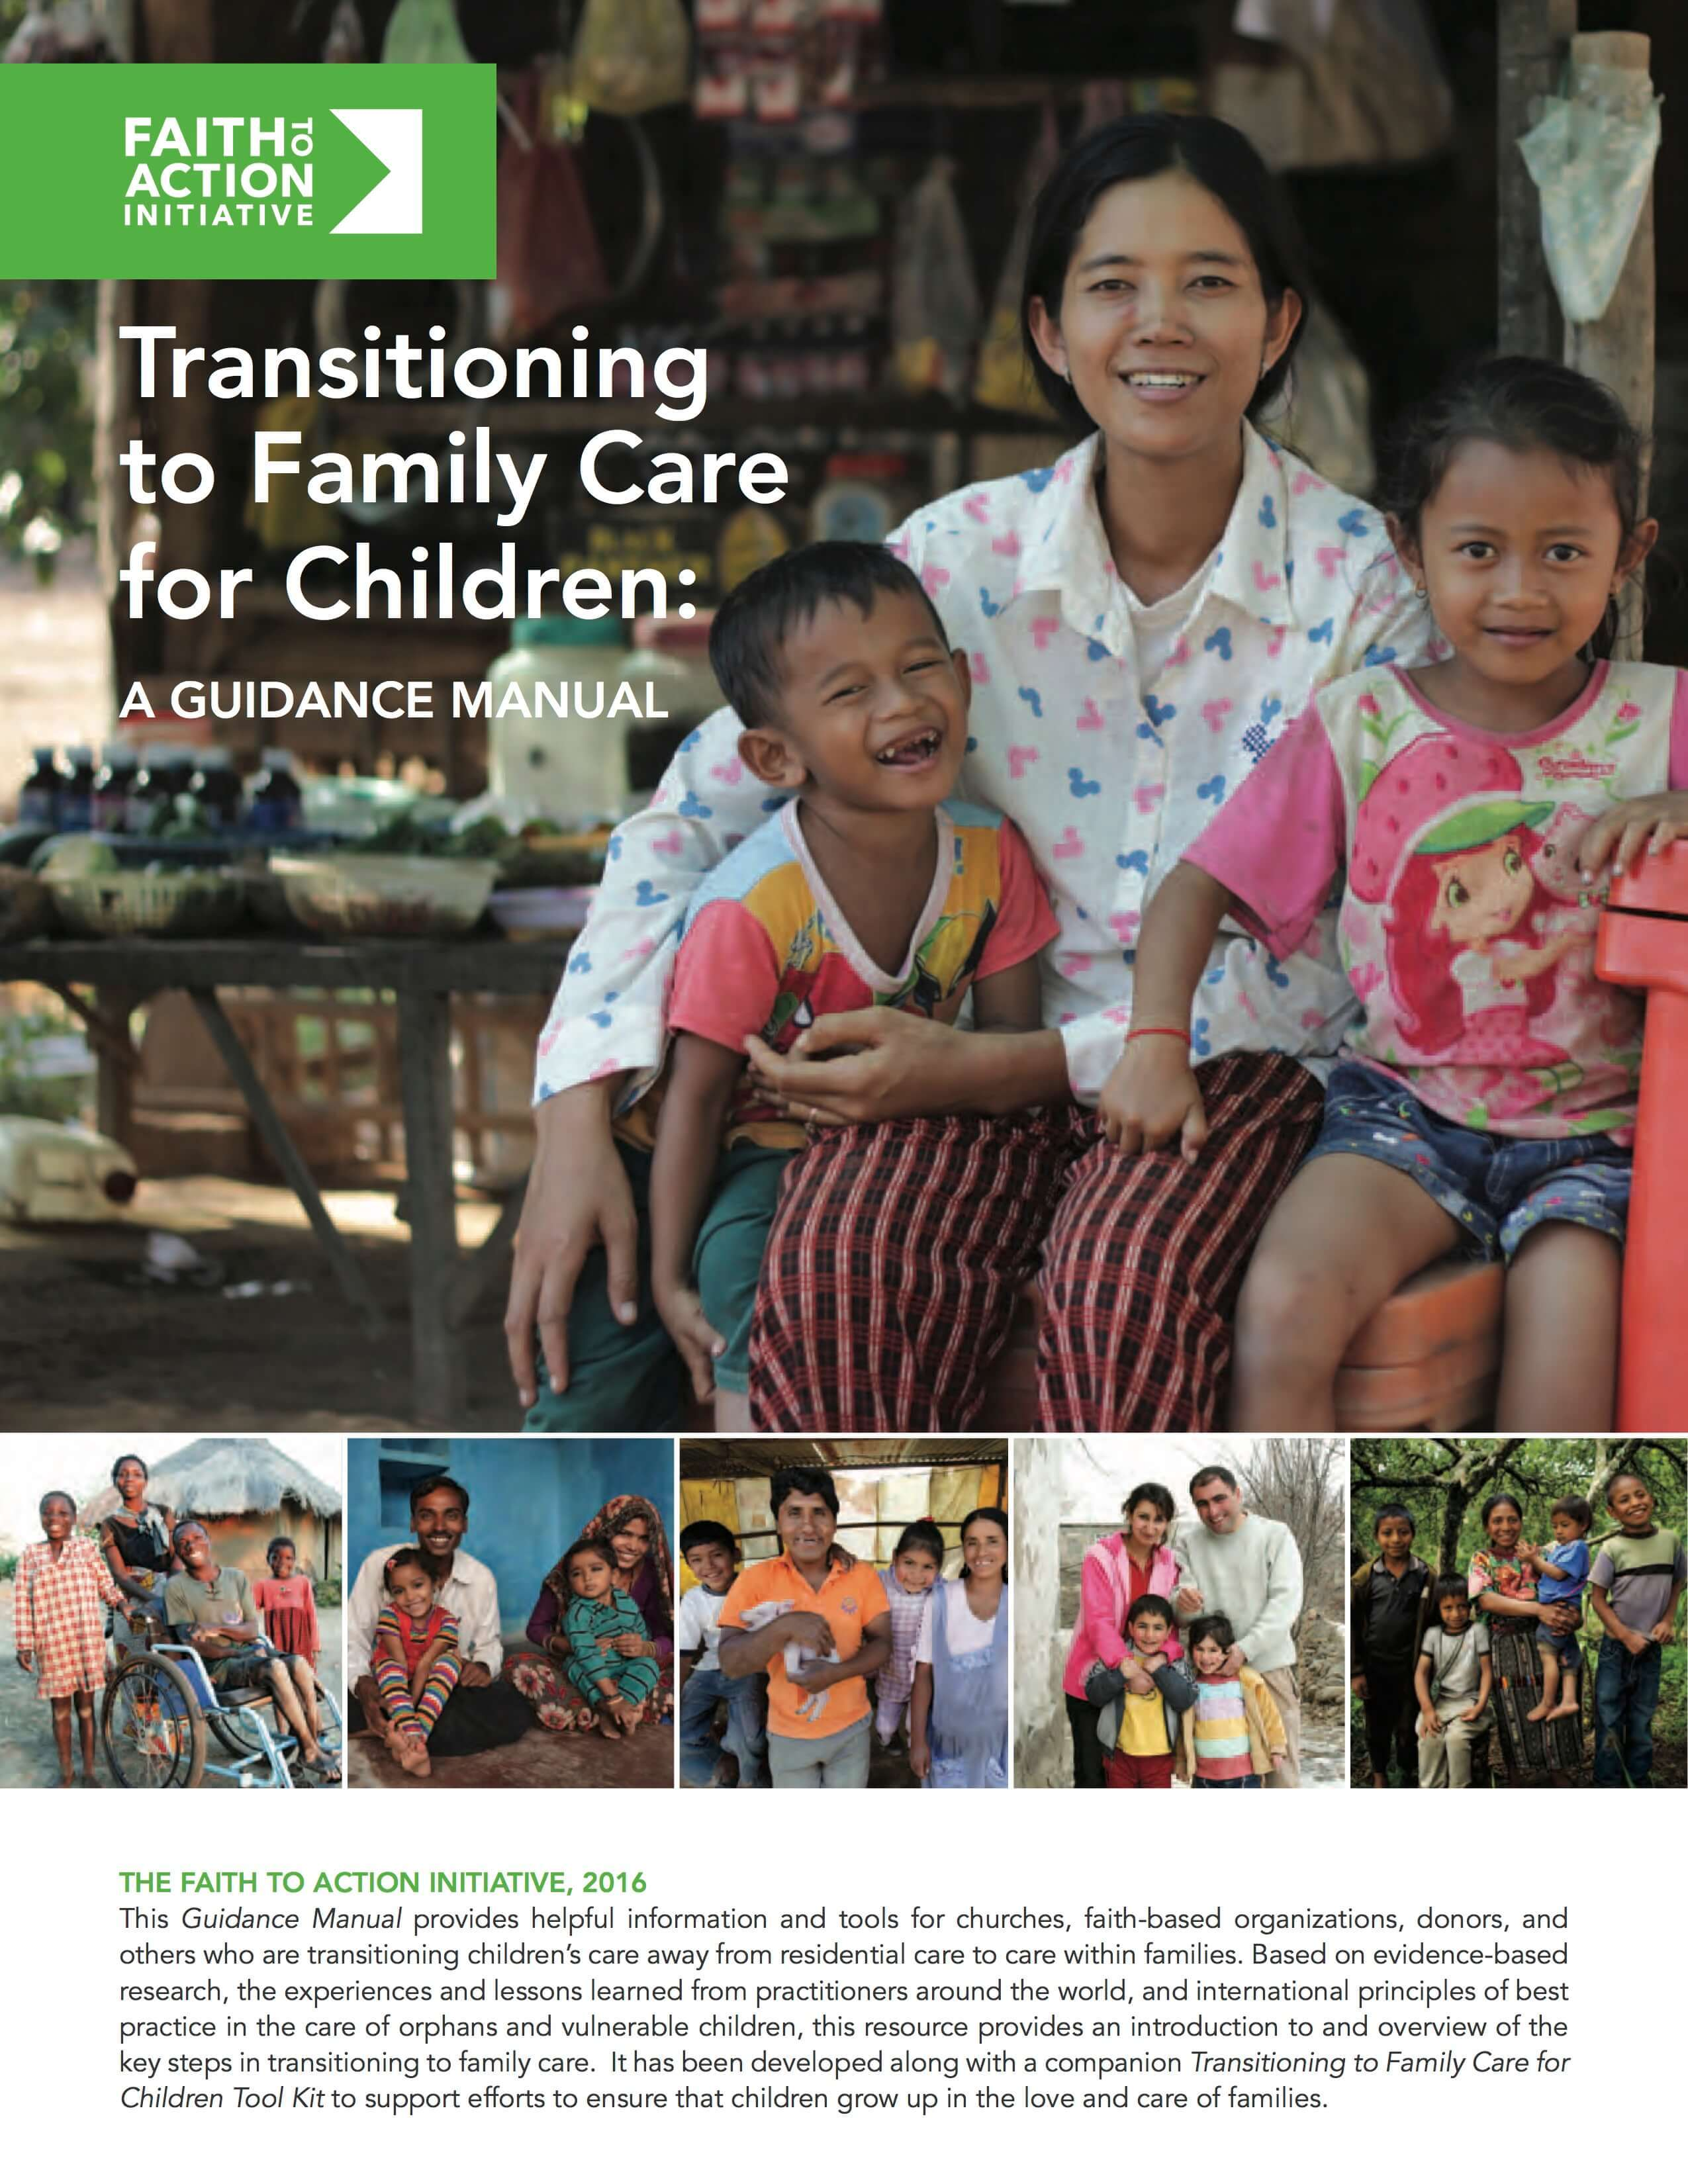 Transitioning to Family Care for Children: Guidance Manual